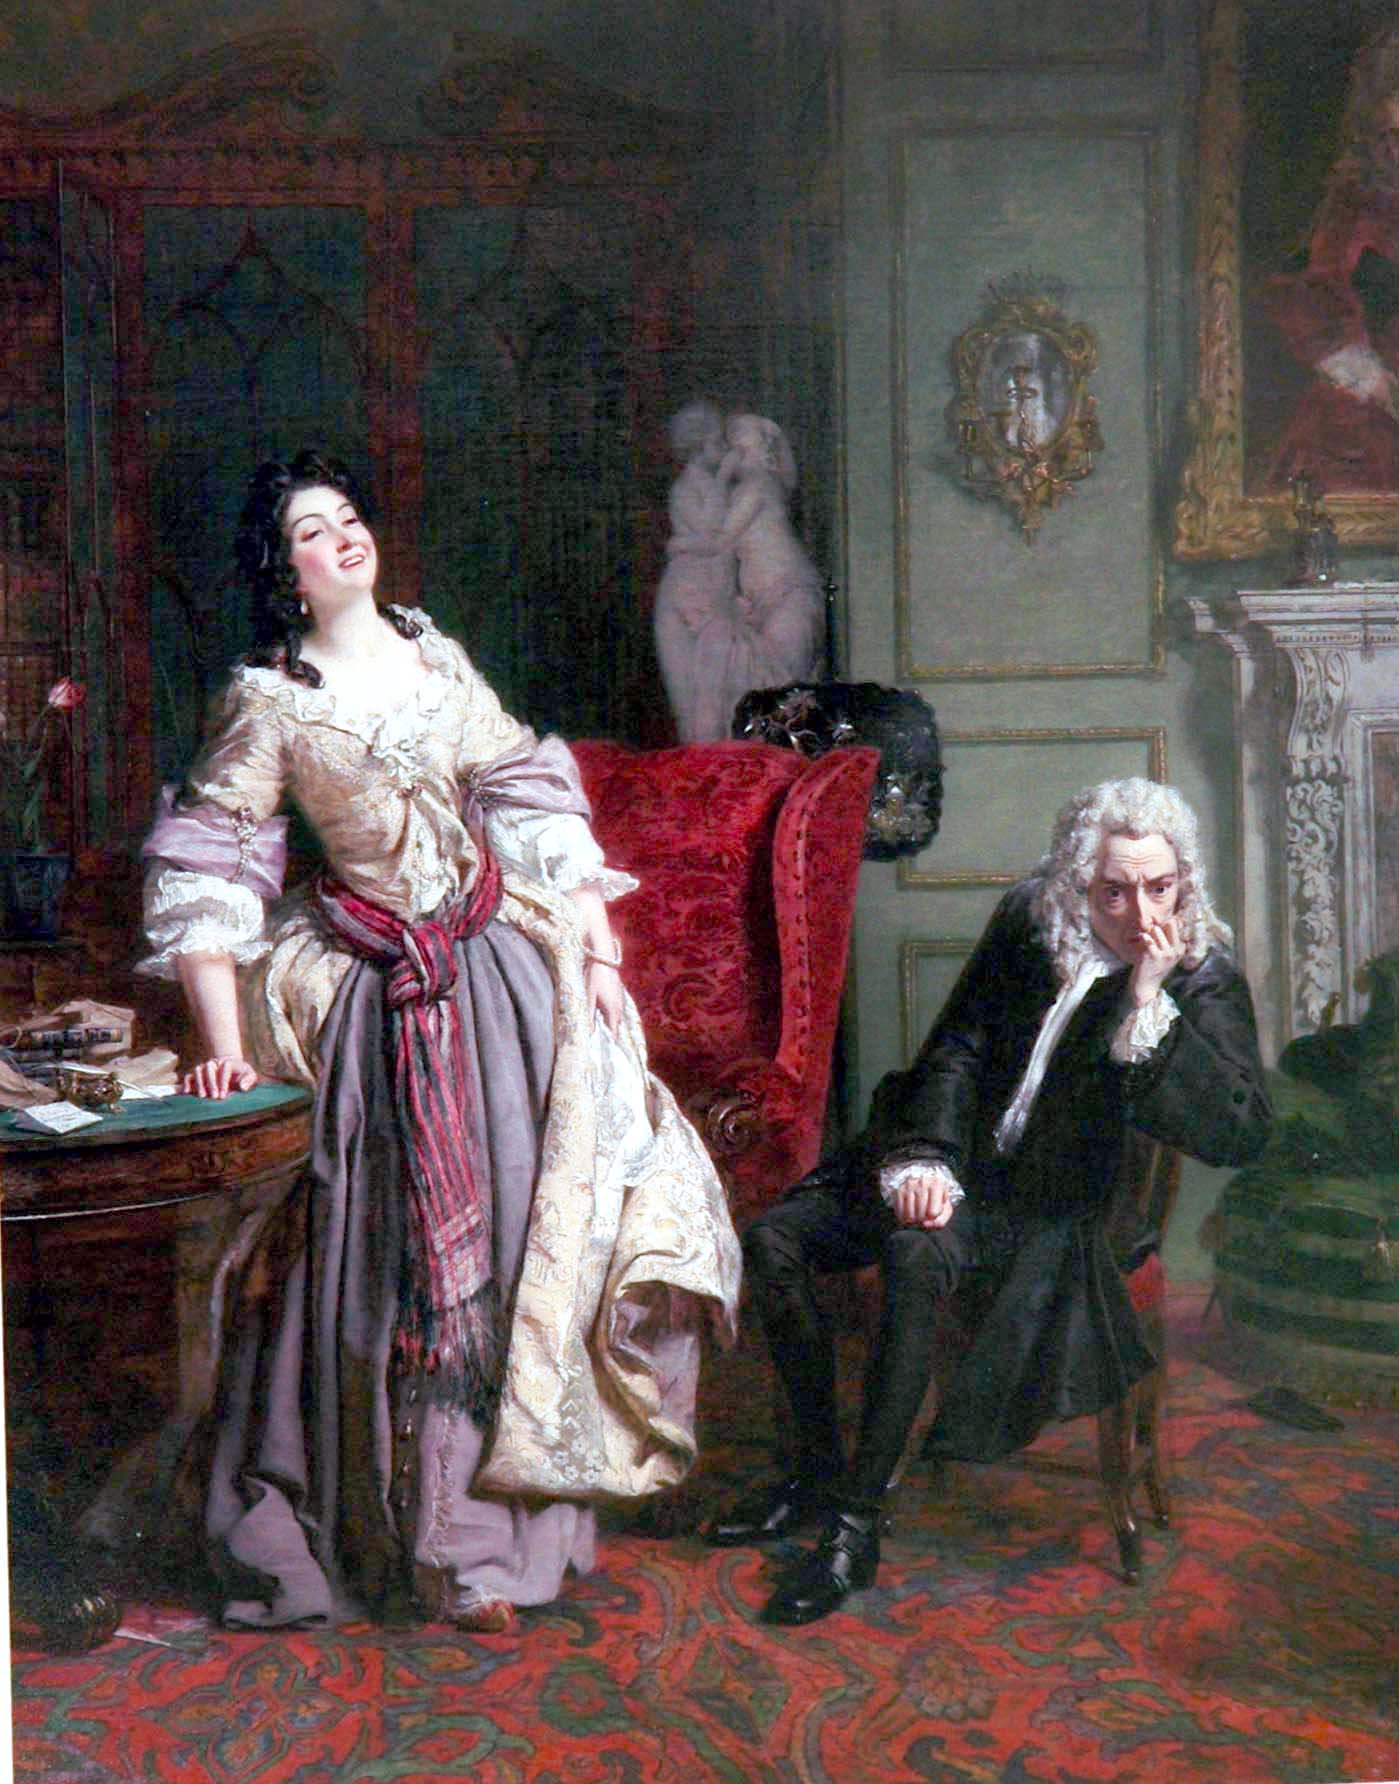 William Powell Frith,  Pope makes love to Lady Mary Montague,  1851, oil on canvas, Aukland City Art Gallery, New Zealand.   https://commons.wikimedia.org/wiki/File:18firth_Pope.jpg